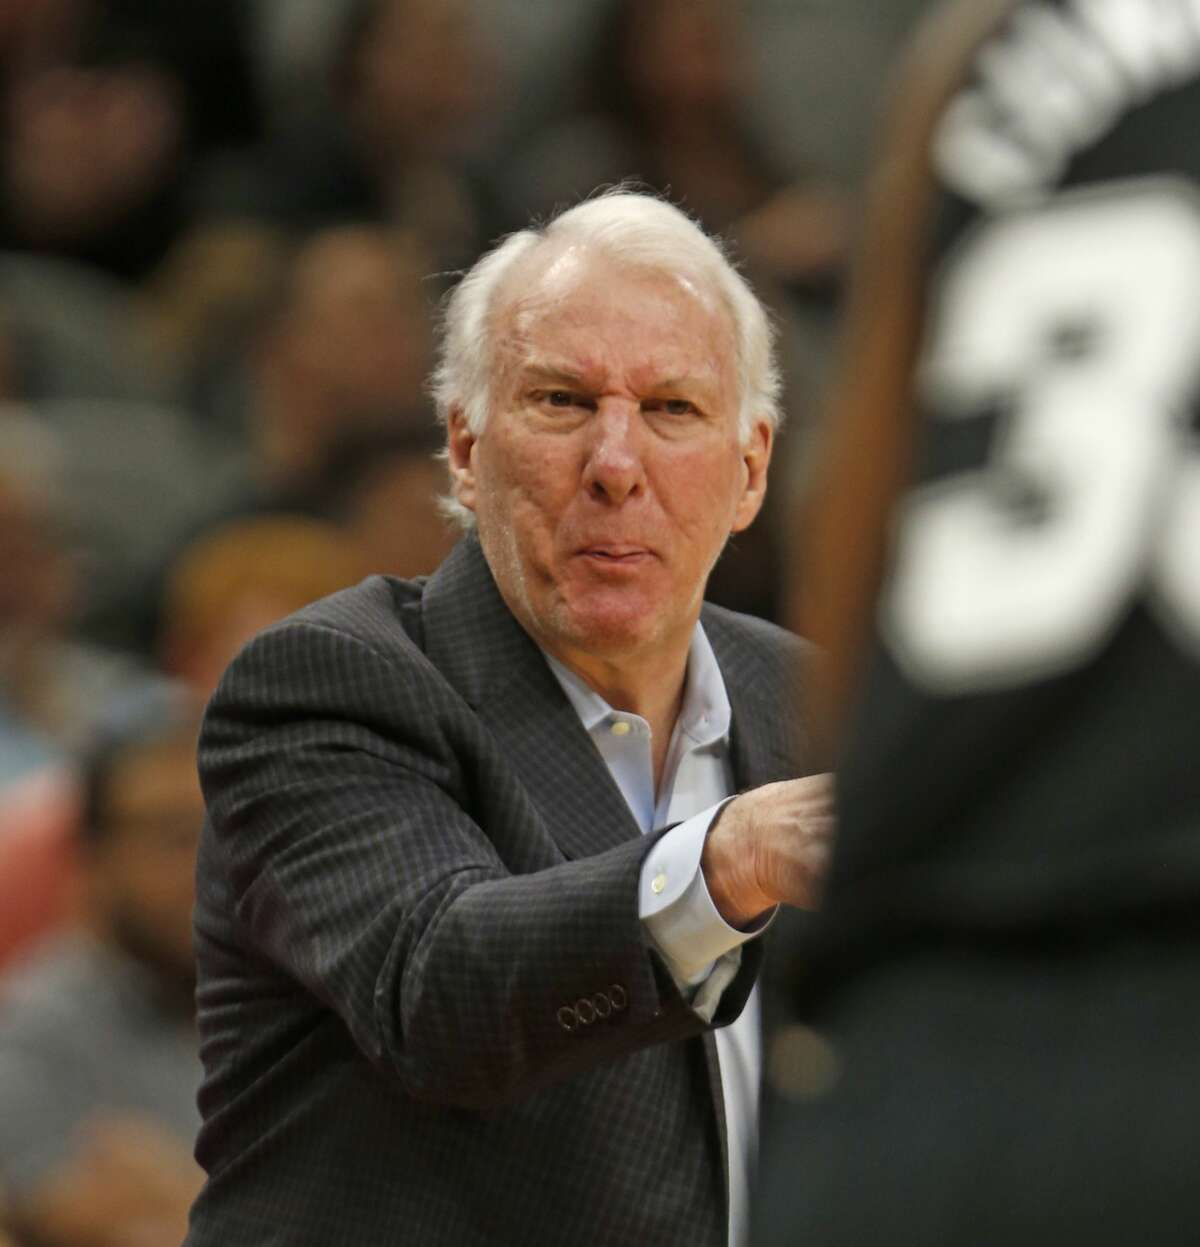 Spurs head coach Gregg Popovich yells instructions to his team. Portland Trail Blazers v San Antonio Spurs at AT&T Center on Sunday, December 2, 2018.